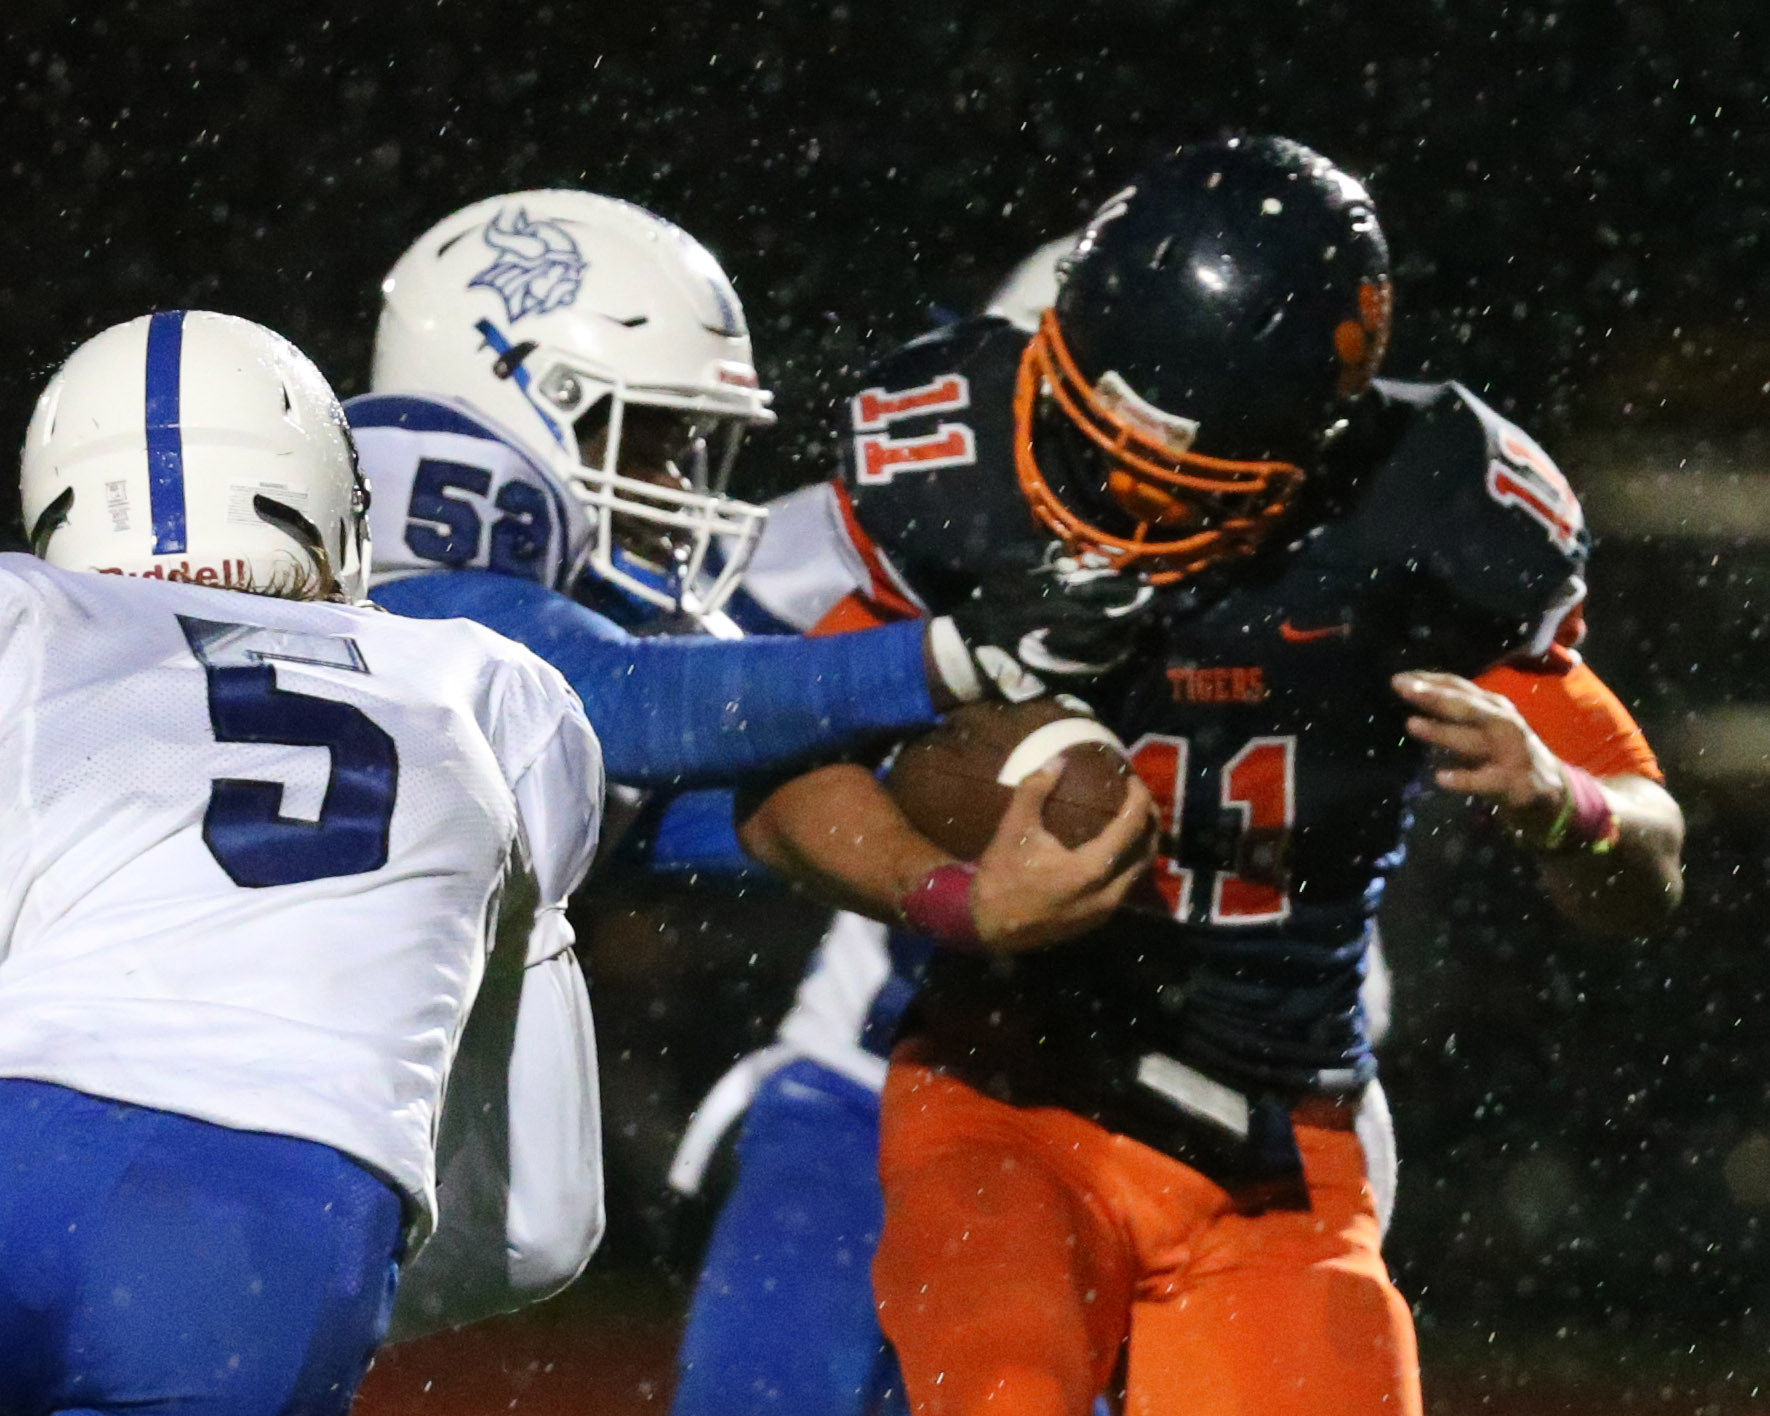 Isaiah McDuffie and the Bennett Tigers pulled away from Grand Island and will face North Tonawanda in the Class A semifinals Friday night at All High Stadium. (James P. McCoy/Buffalo News)